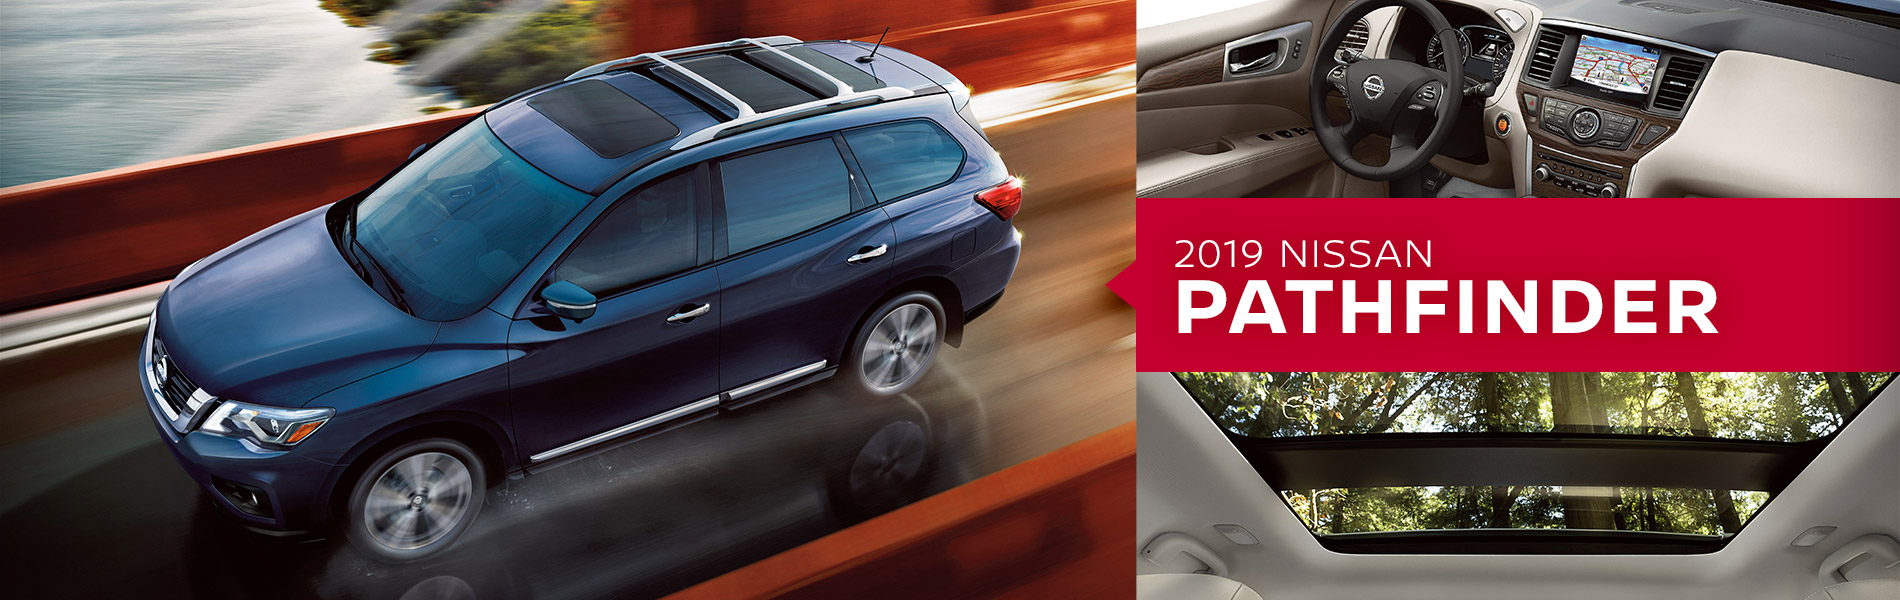 2019 Nissan Pathfinder | Greenville, MS